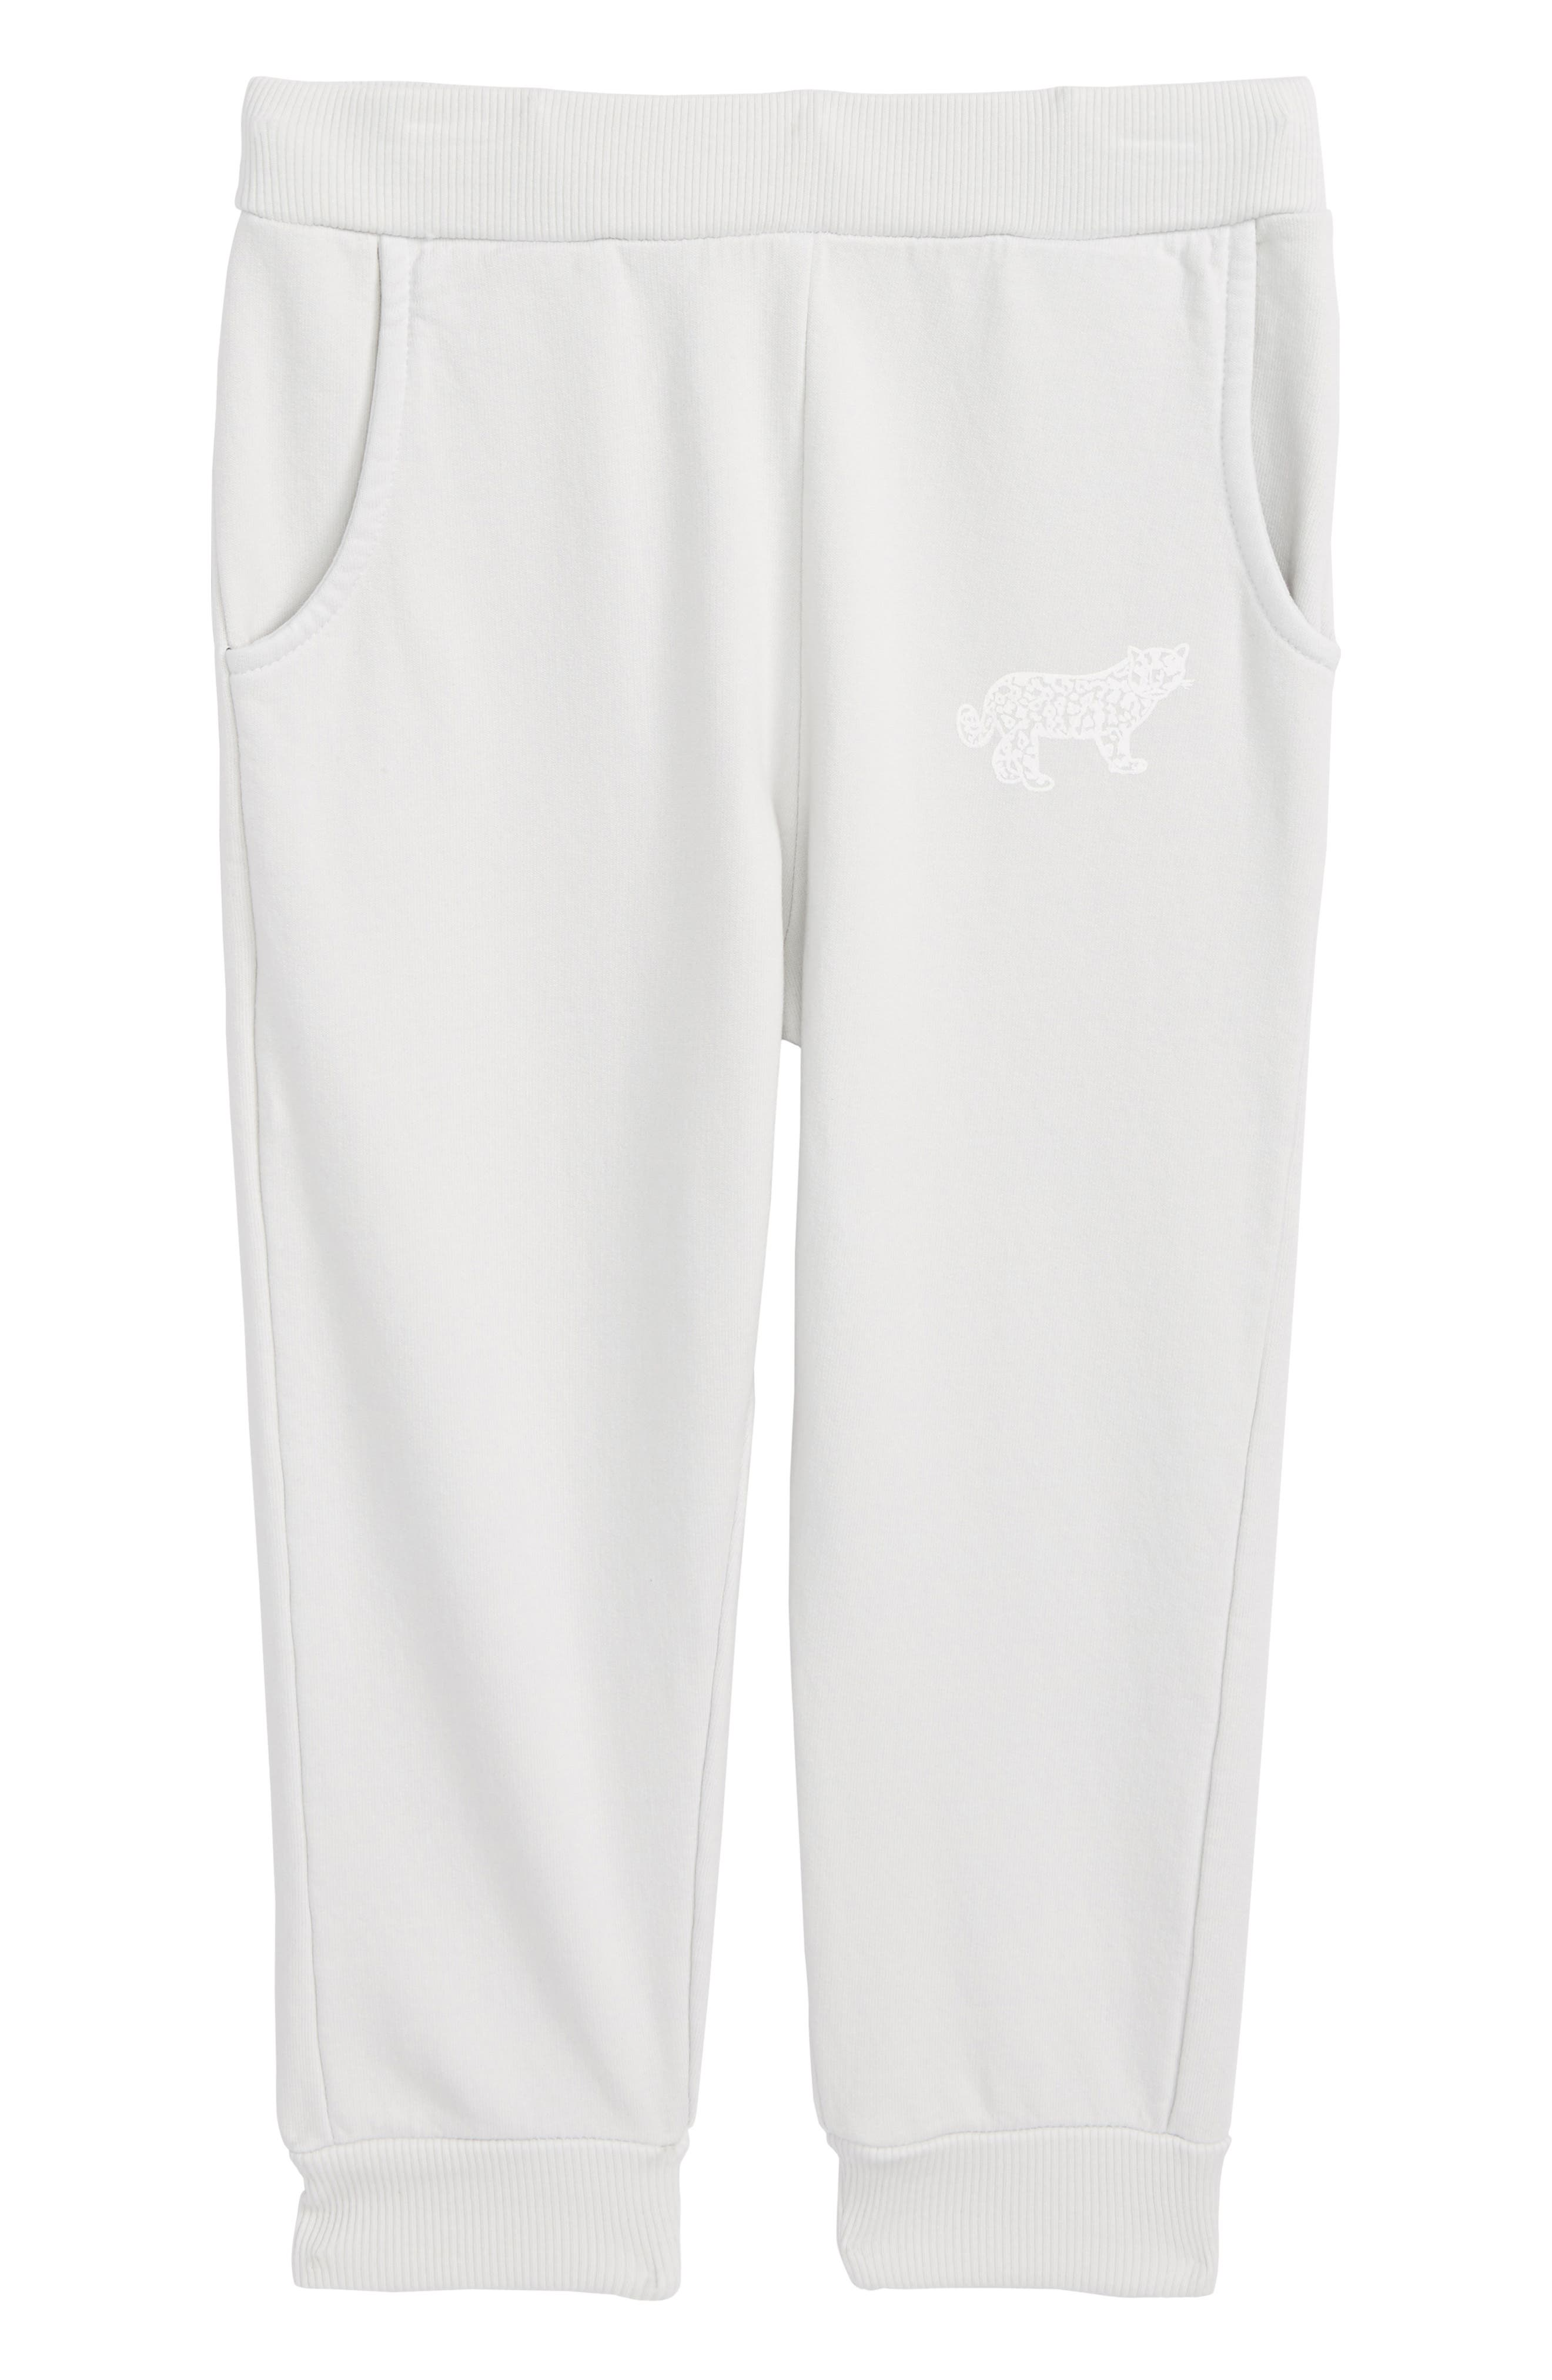 Ryan Jogger Pants,                         Main,                         color, Pebble